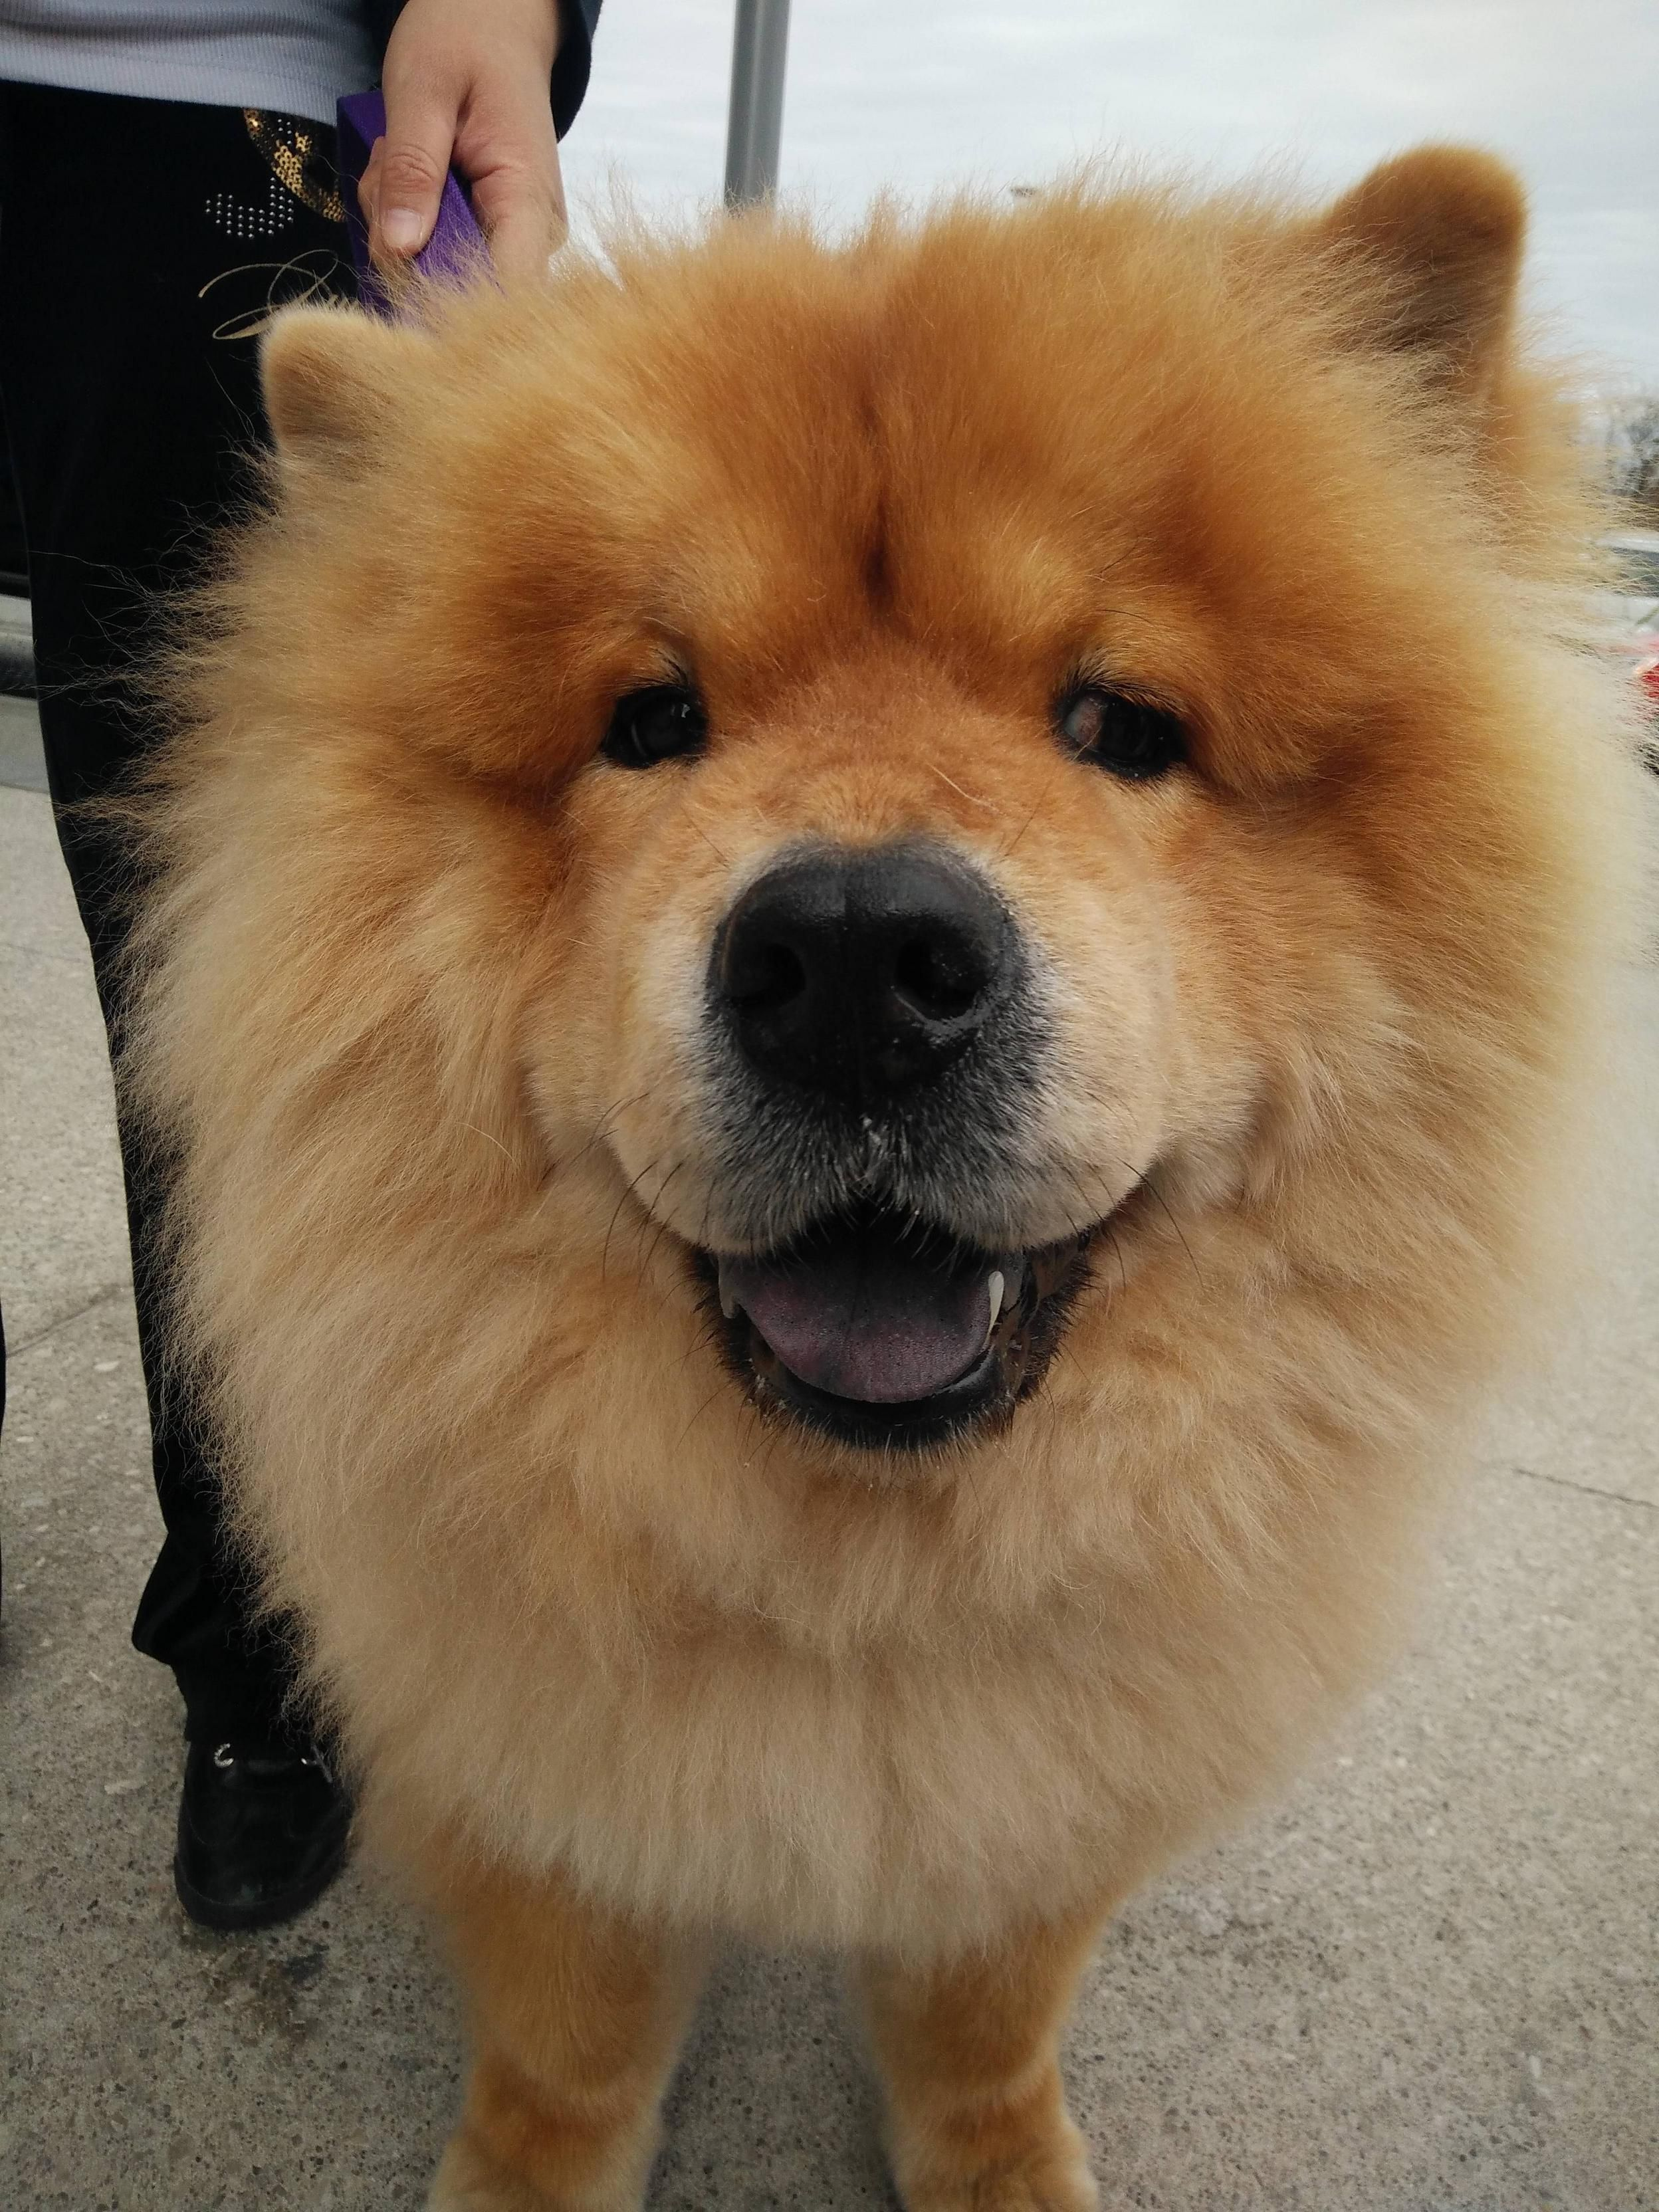 Big Fluffy Chow With A Big Snoot Http Ift Tt 2pdevmx Best Dogs